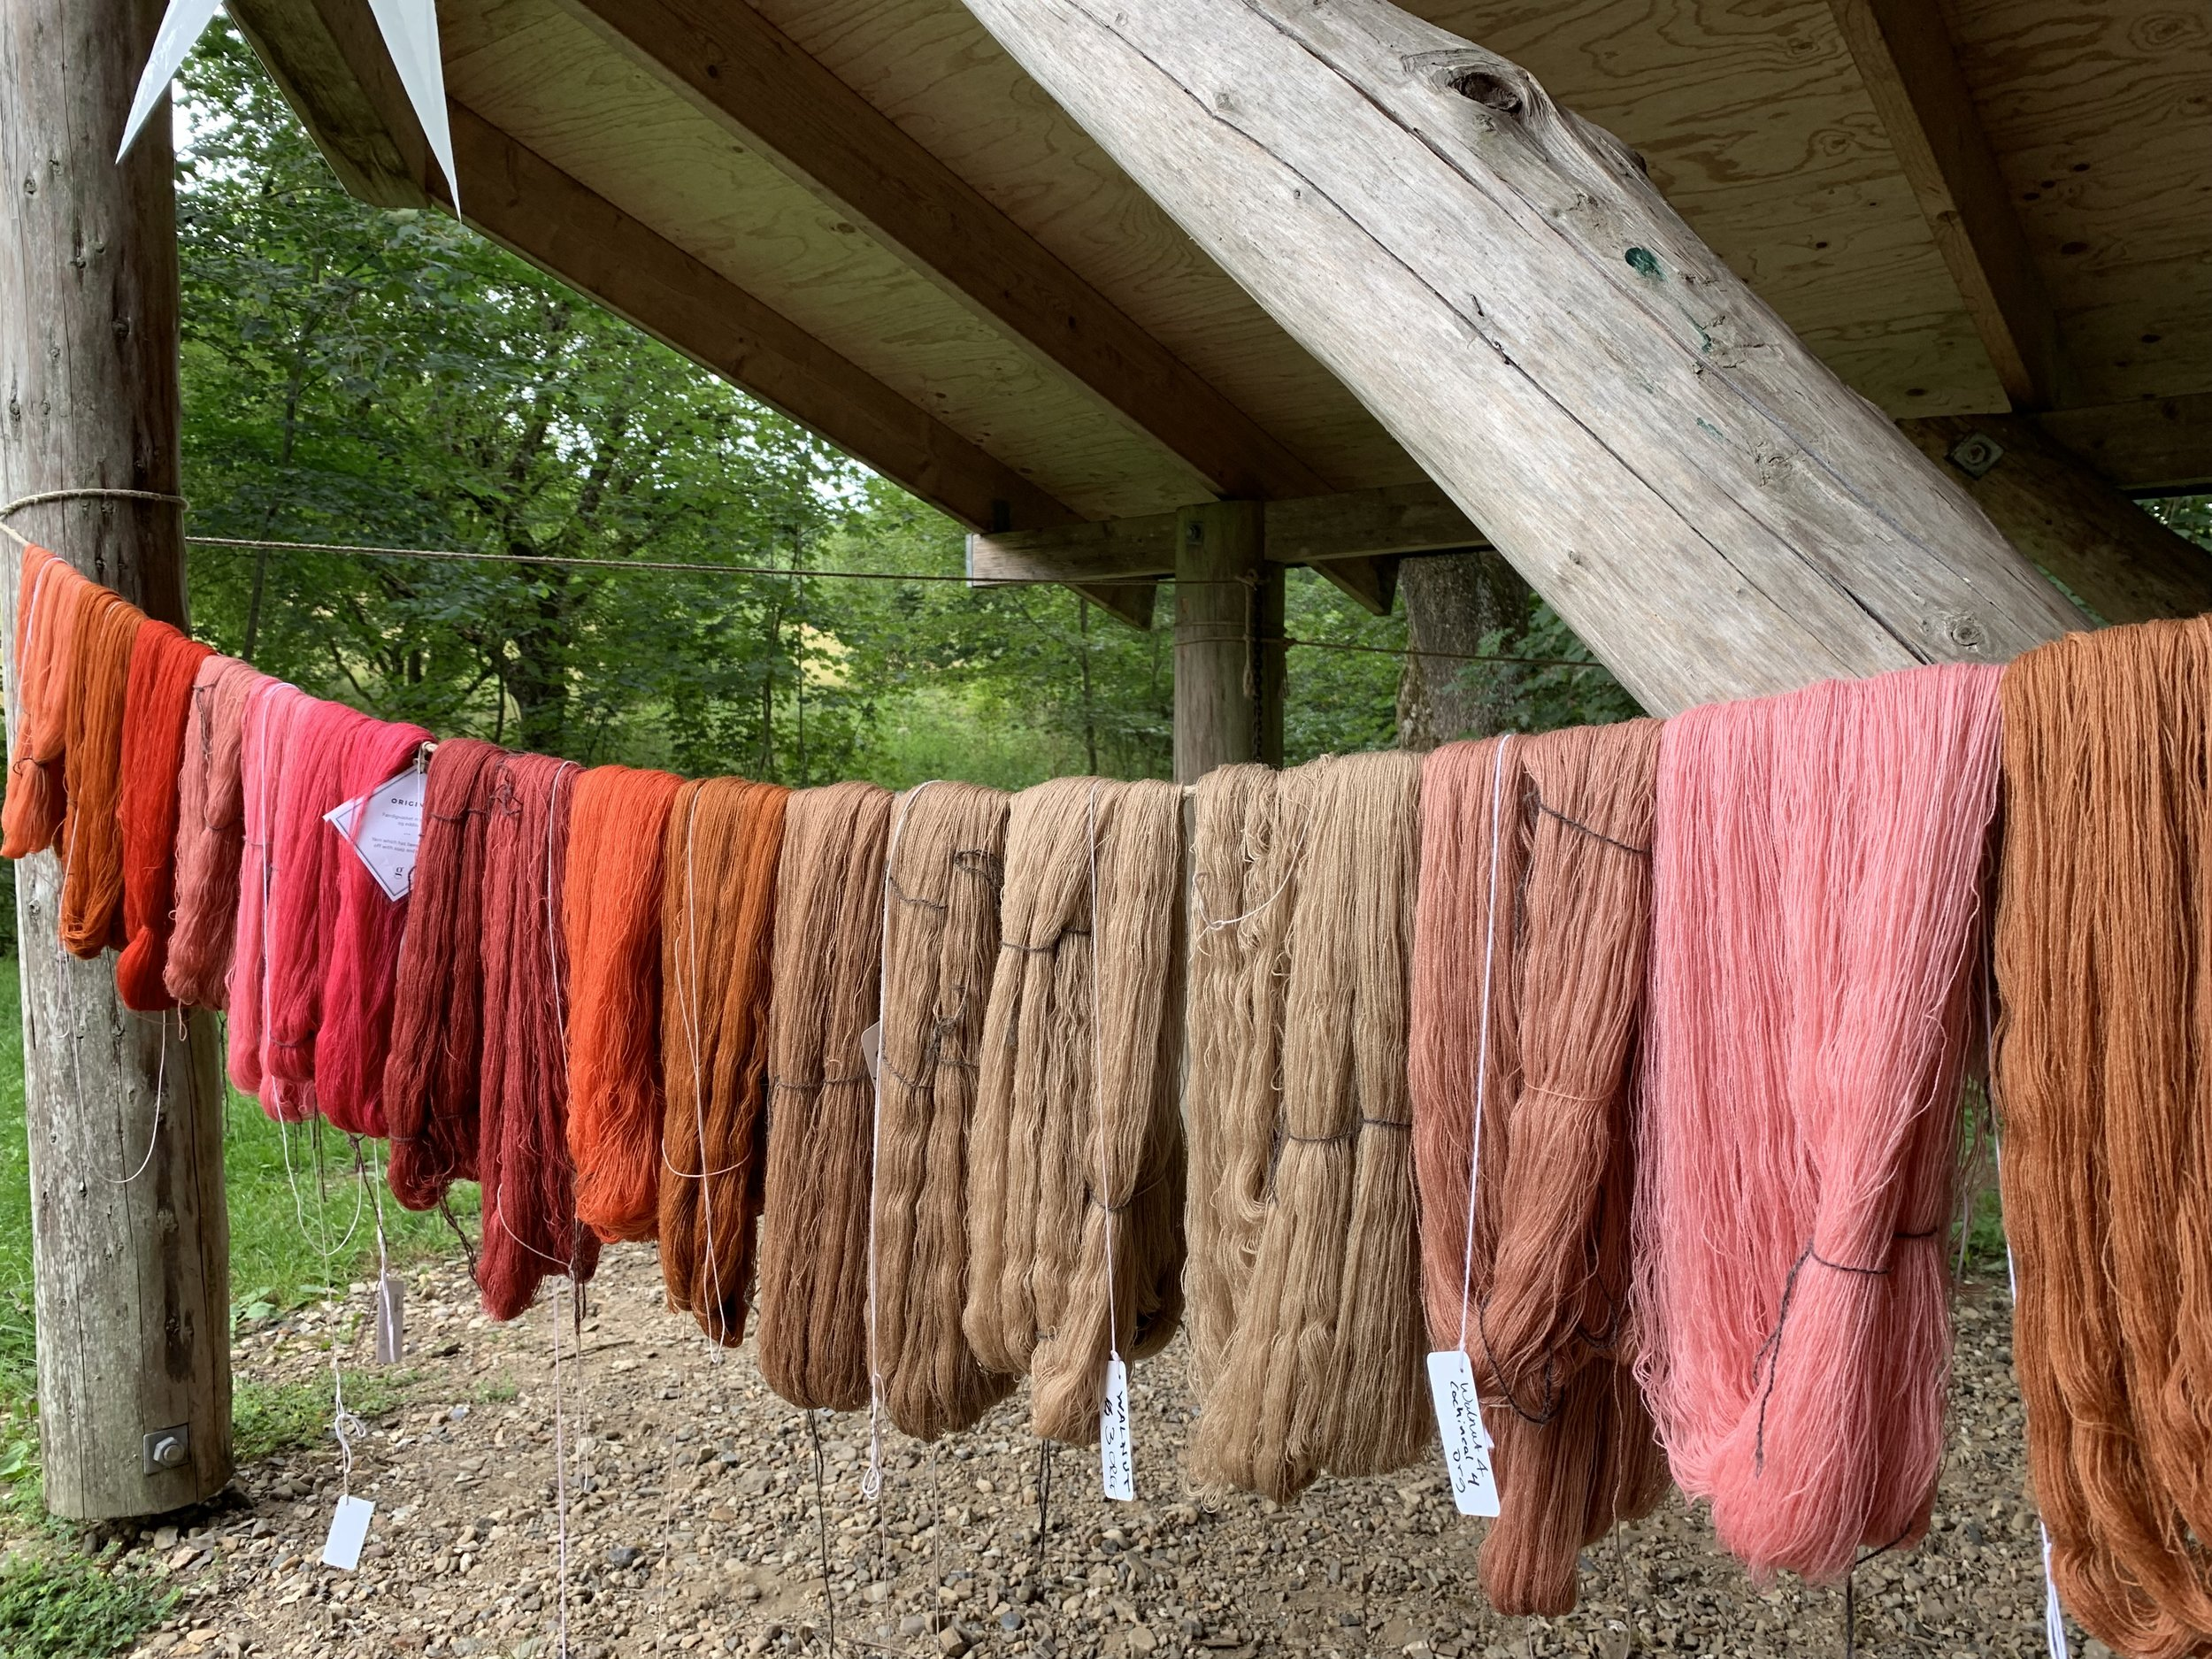 Day 1 skeins hanging to dry. Some skeins were over dyed in other dye pots to create varying shades.